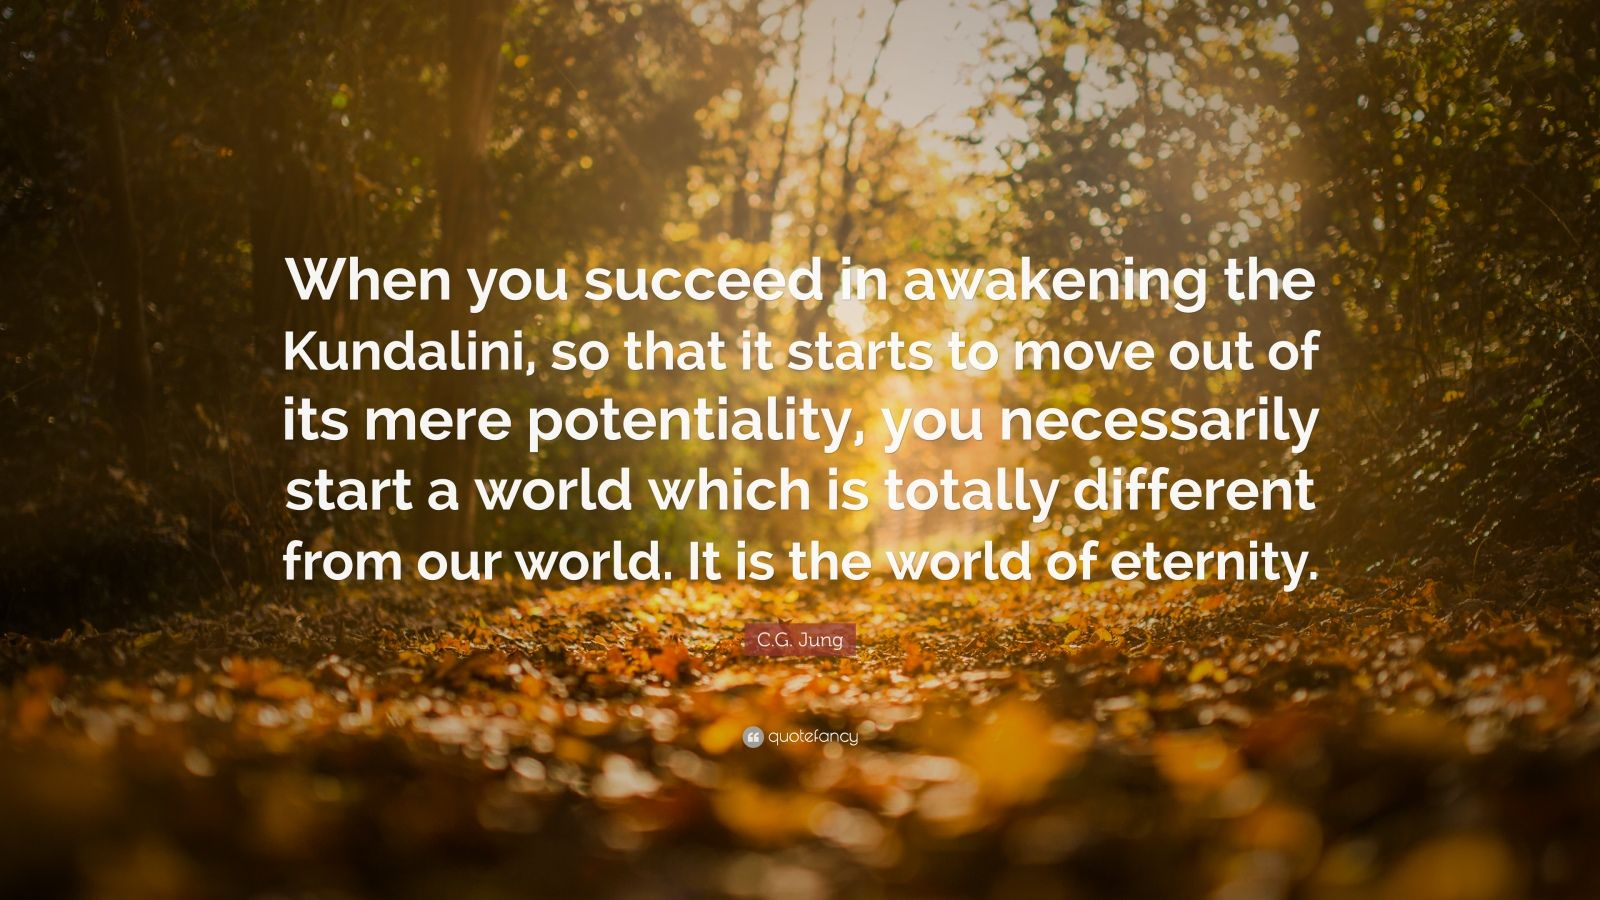 "C.G. Jung Quote: ""When you succeed in awakening the Kundalini, so that it starts to move out of its mere potentiality, you necessarily start a world which is totally different from our world. It is the world of eternity."""